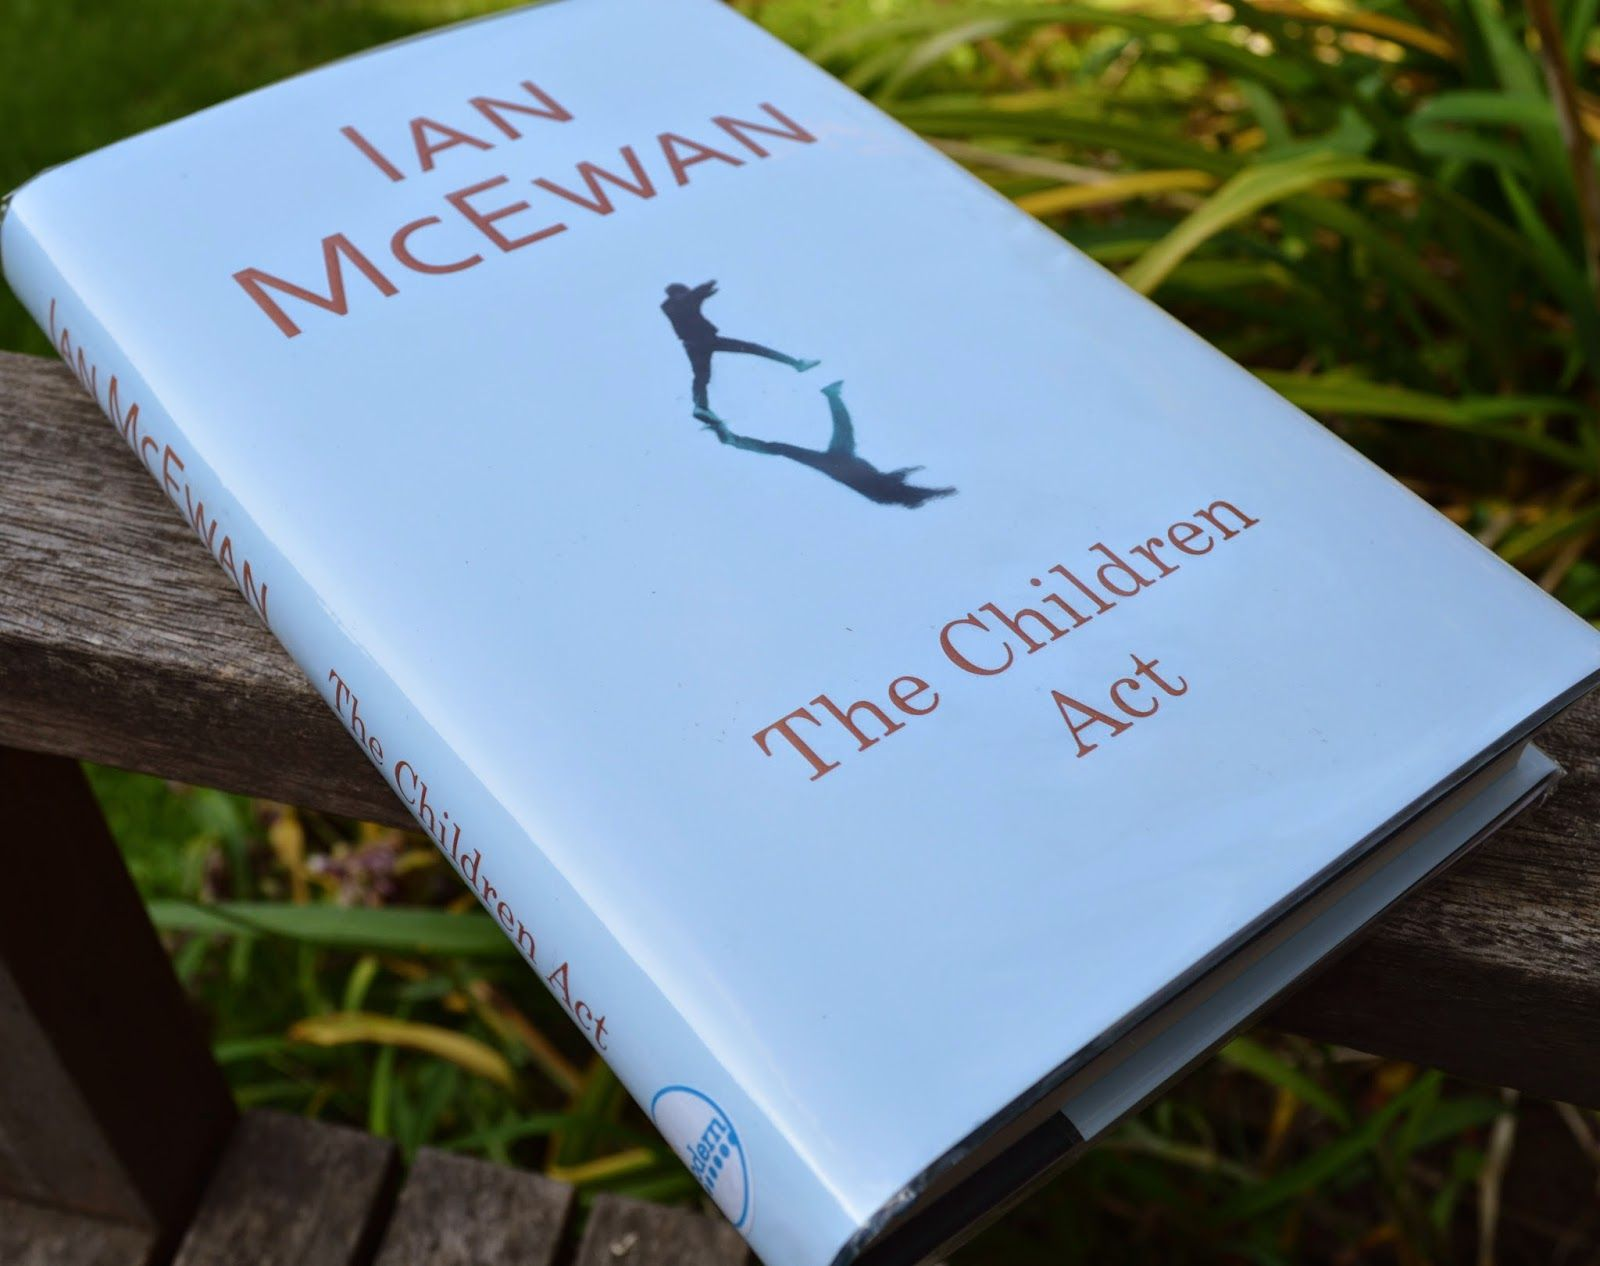 Ian Mcewan, The Children's Act